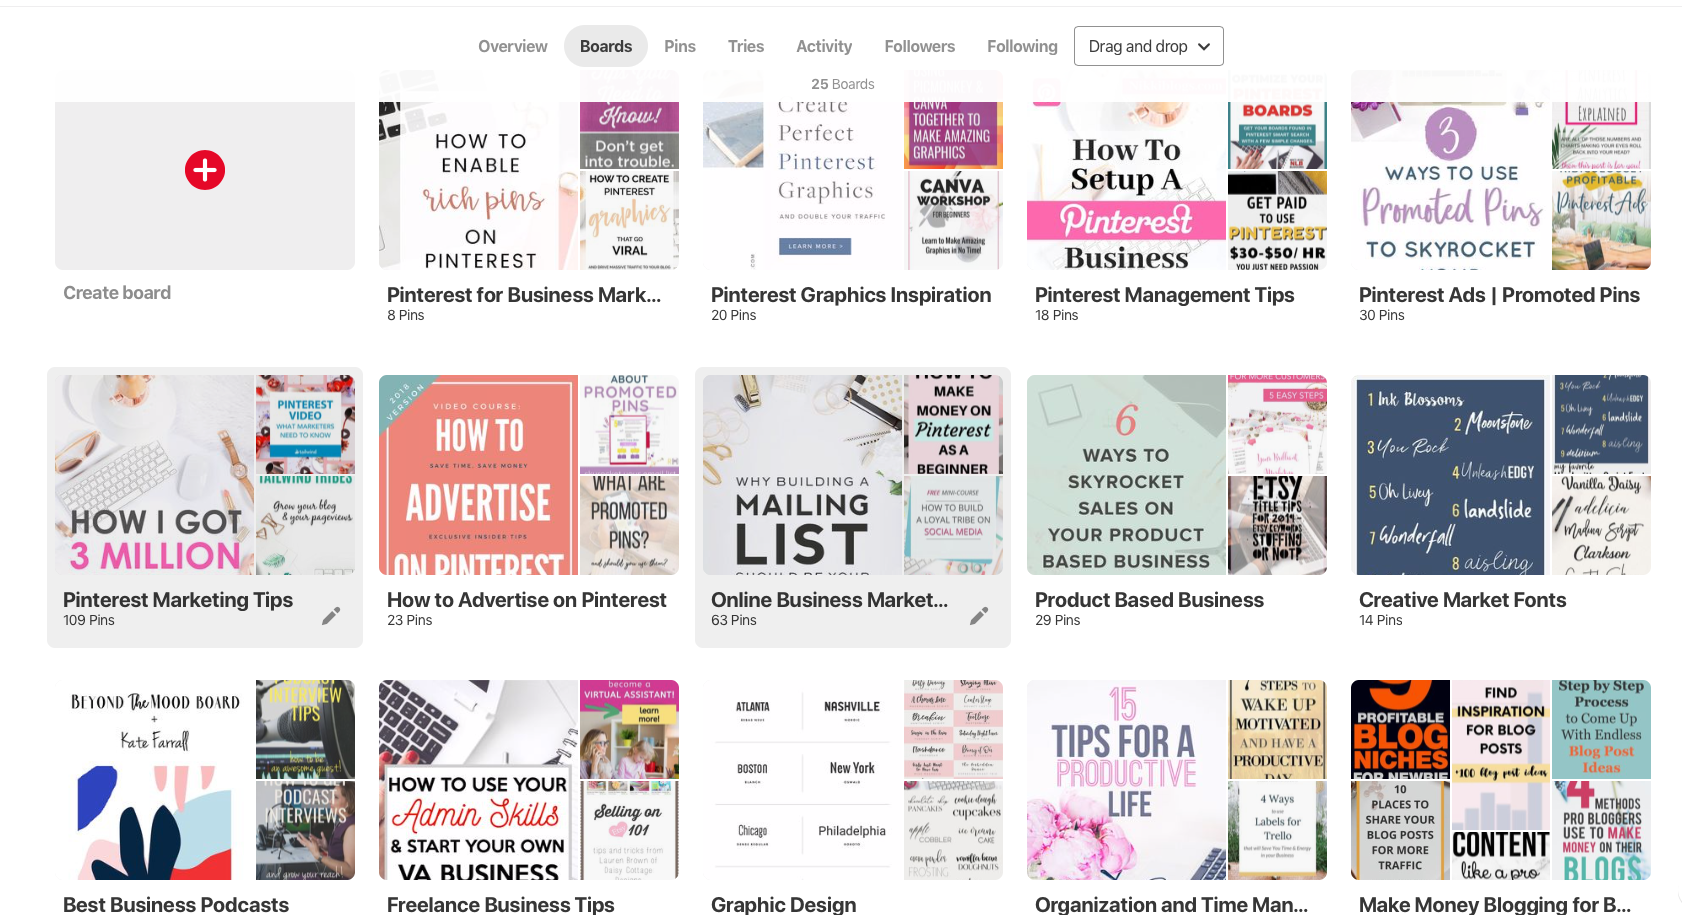 Have you cleaned up your Pinterest boards to reflect the customer you are trying to attract? Don't muddy the waters with personal boards—make them private! Getting clear with your board names makes it easy for Pinterest to know who you are trying to reach.